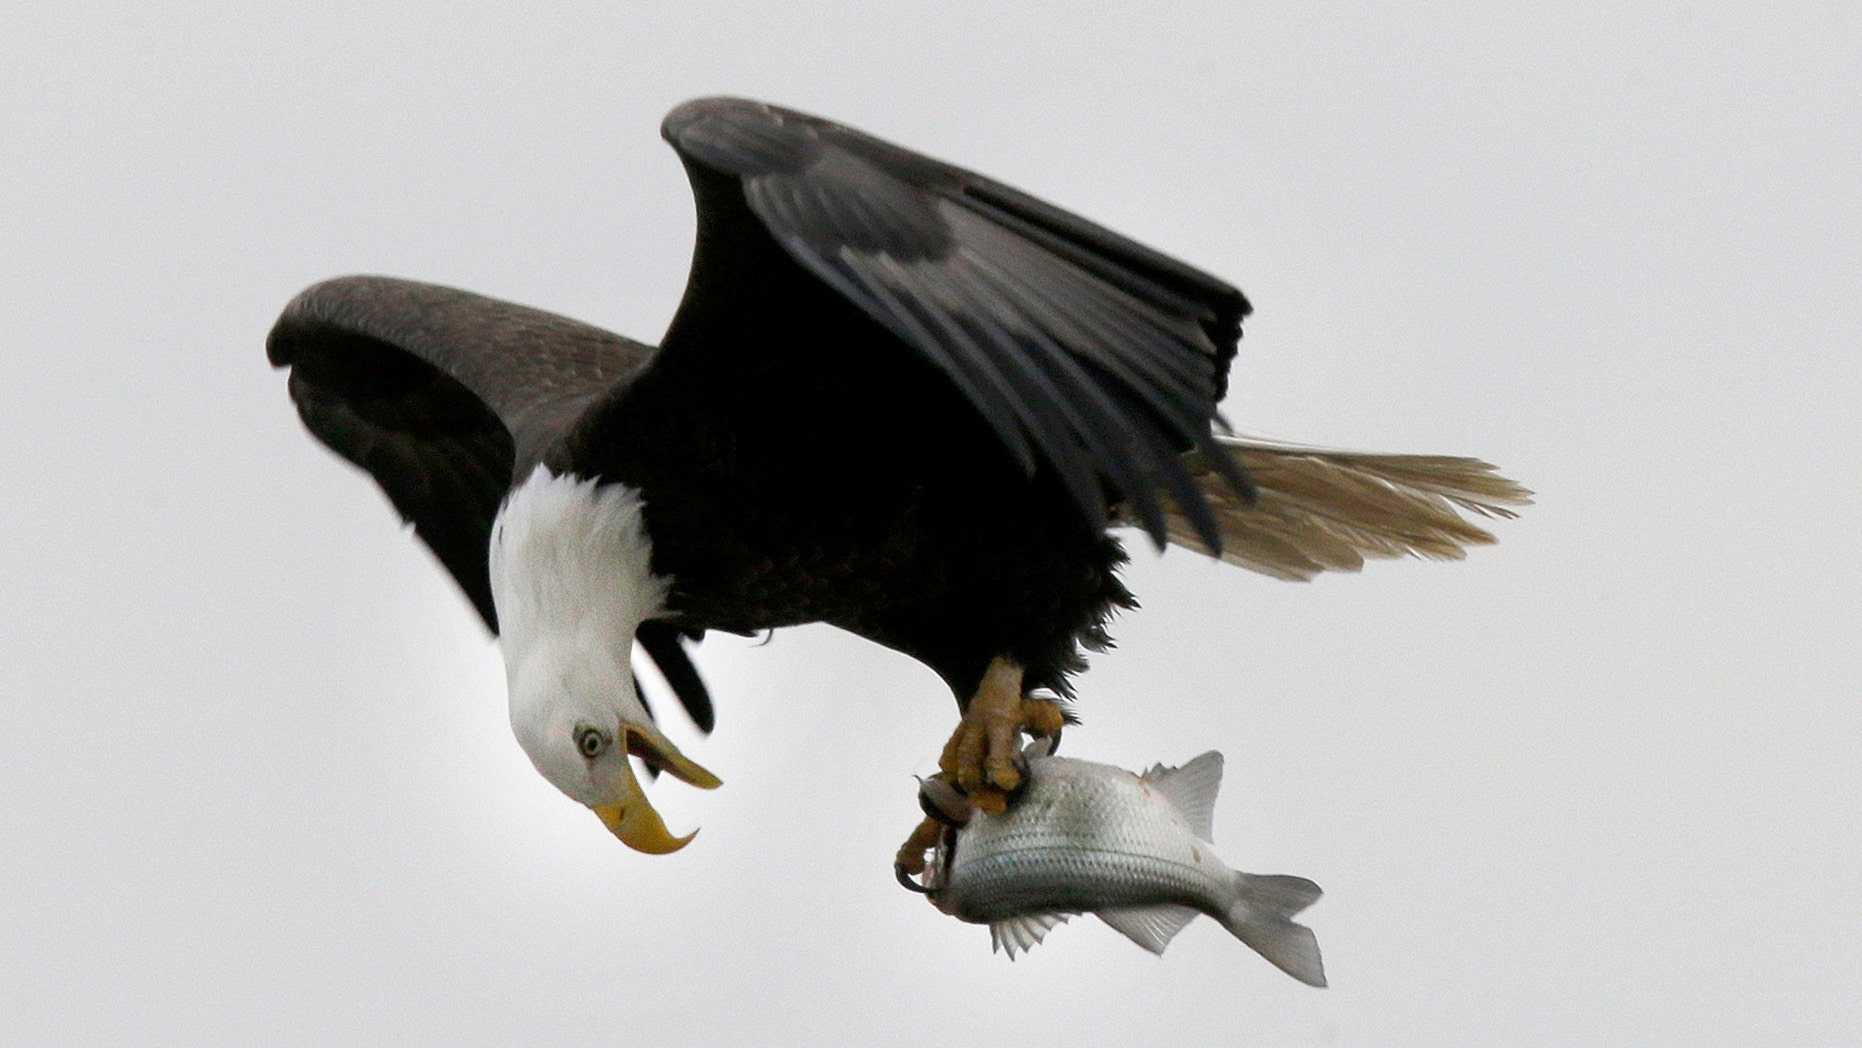 In this Jan. 28, 2016, photo, a bald eagle holds a fish taken from the Haw River below Jordan Lake in Moncure, N.C. Jordan Lake, a 14,000-acre reservoir in the Triangle Region of the state is home to a dozen or more pairs of nesting bald eagles. The many miles of shoreline make for a perfect habitat for the nation's symbol. (AP Photo/Gerry Broome)